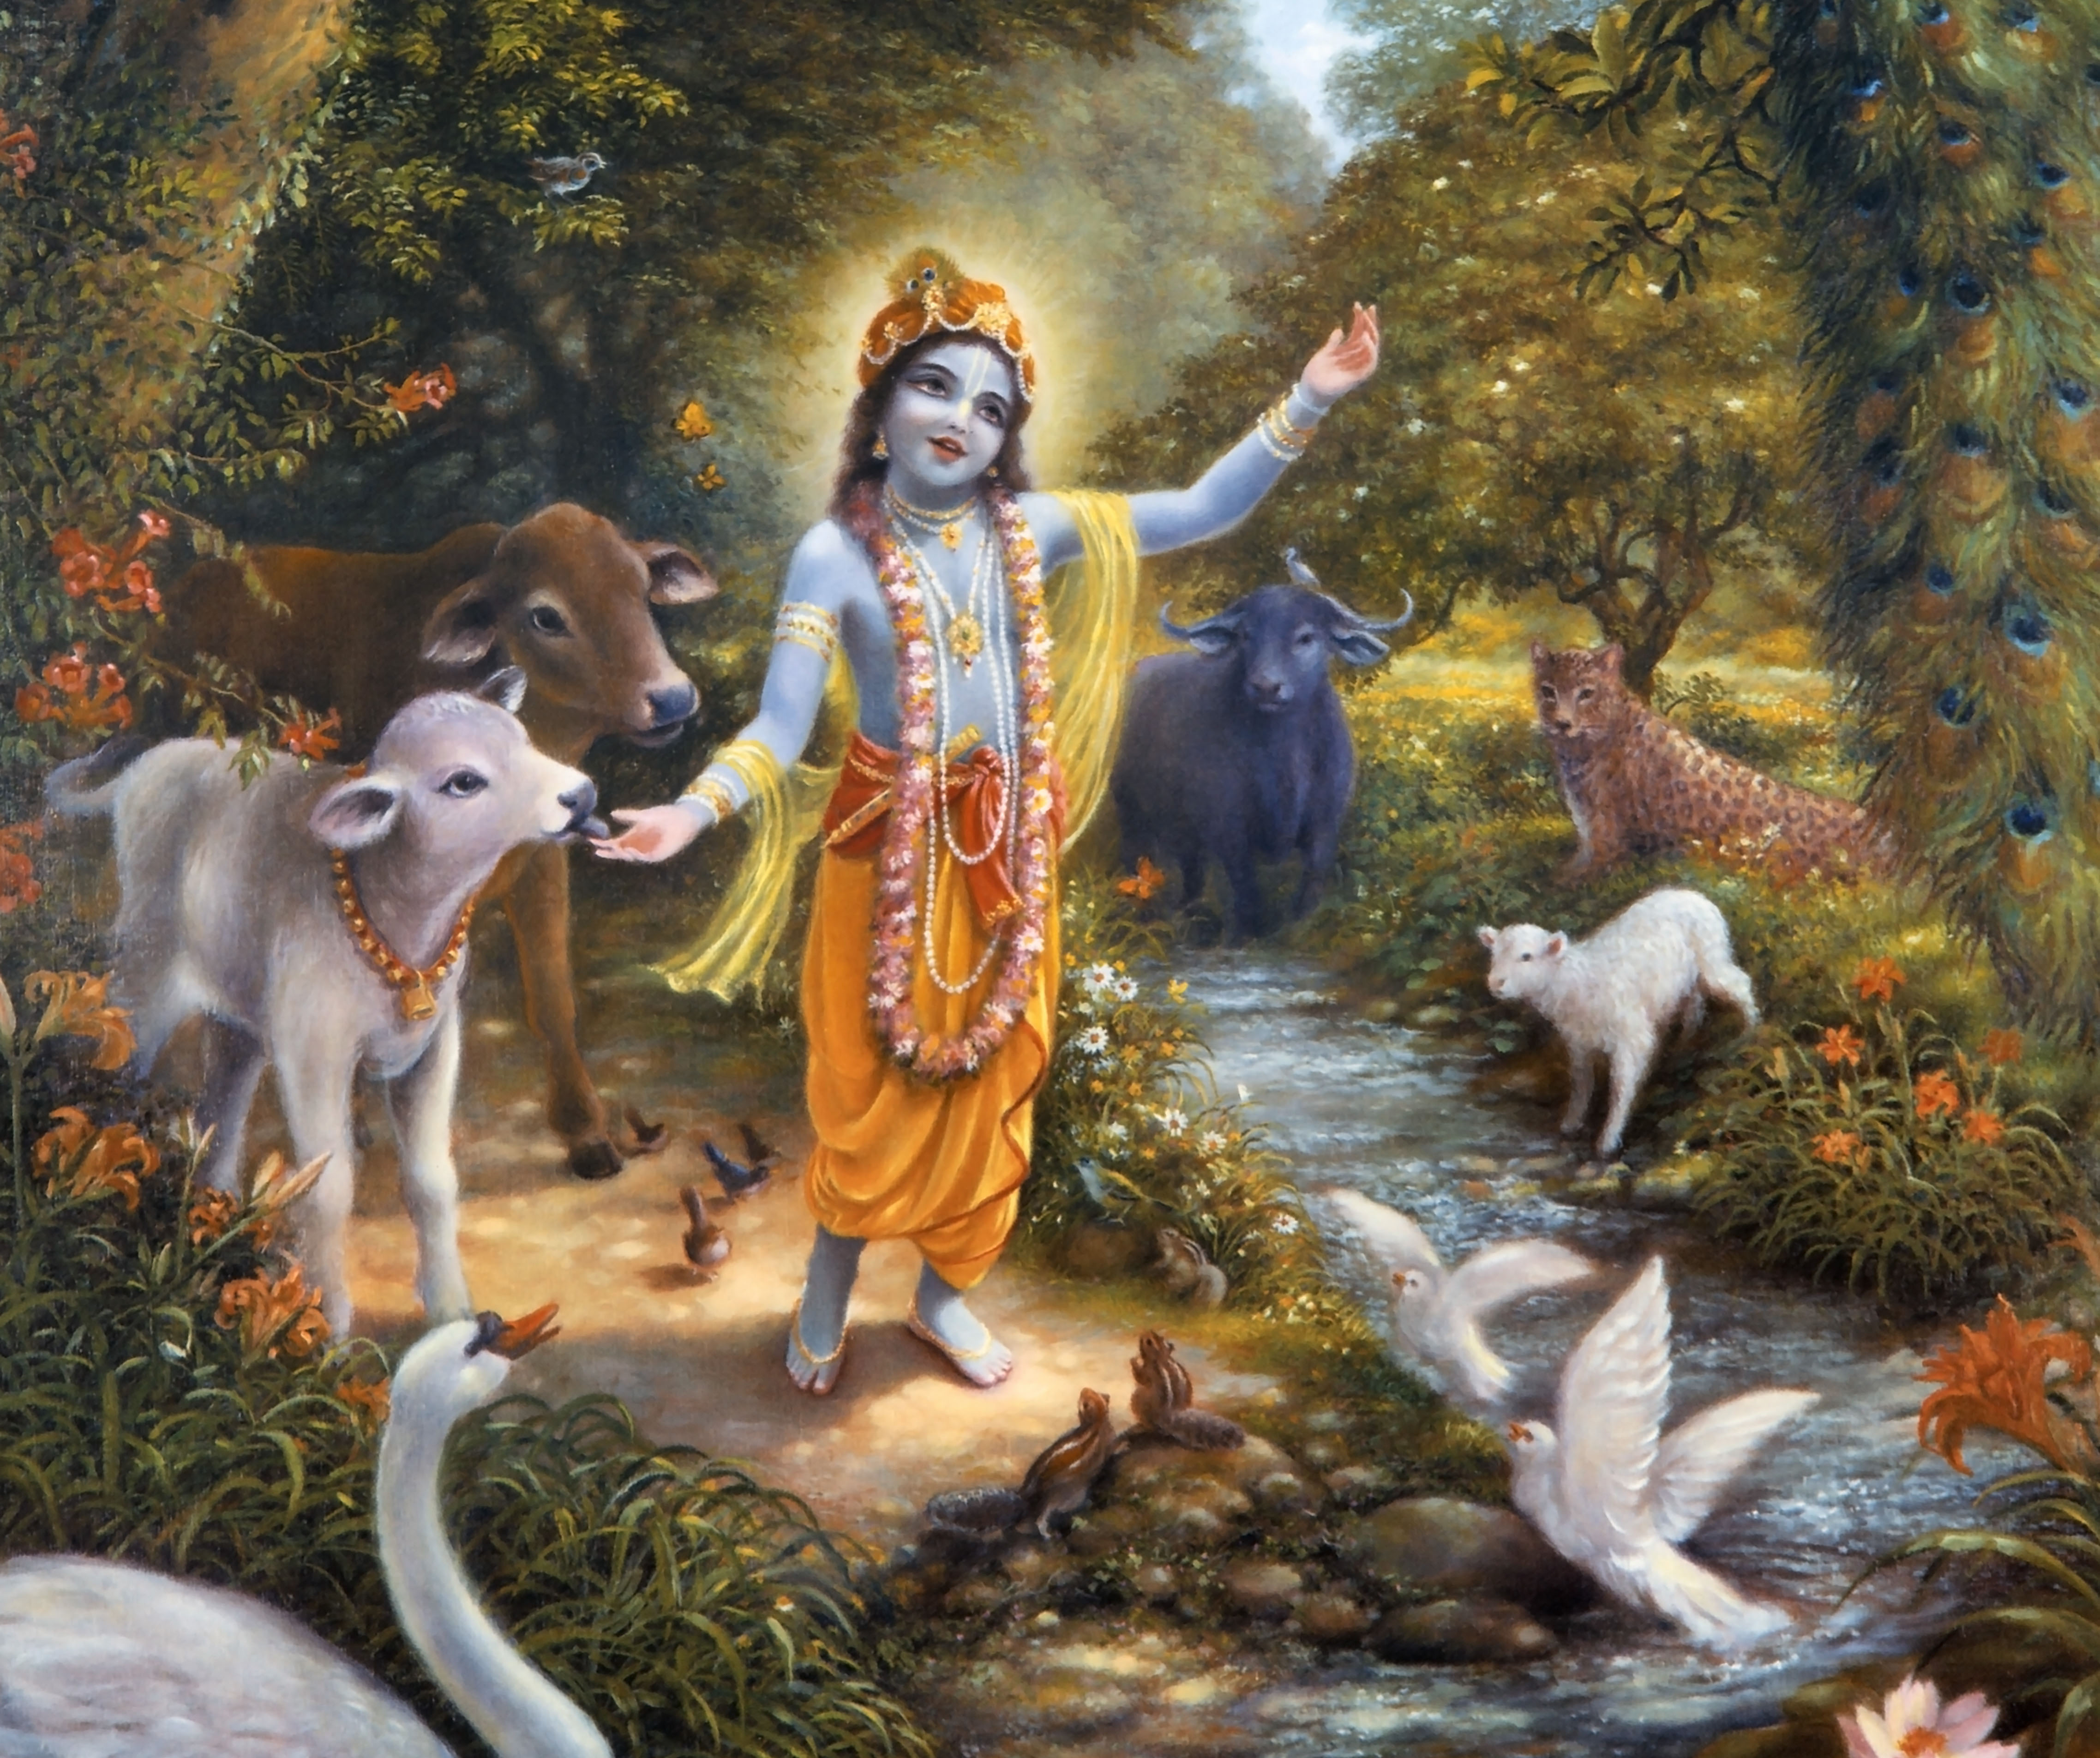 Krishna-with-the-animals-of-Vrindavan-on-the-bank-of-the-Yamuna-River.jpg